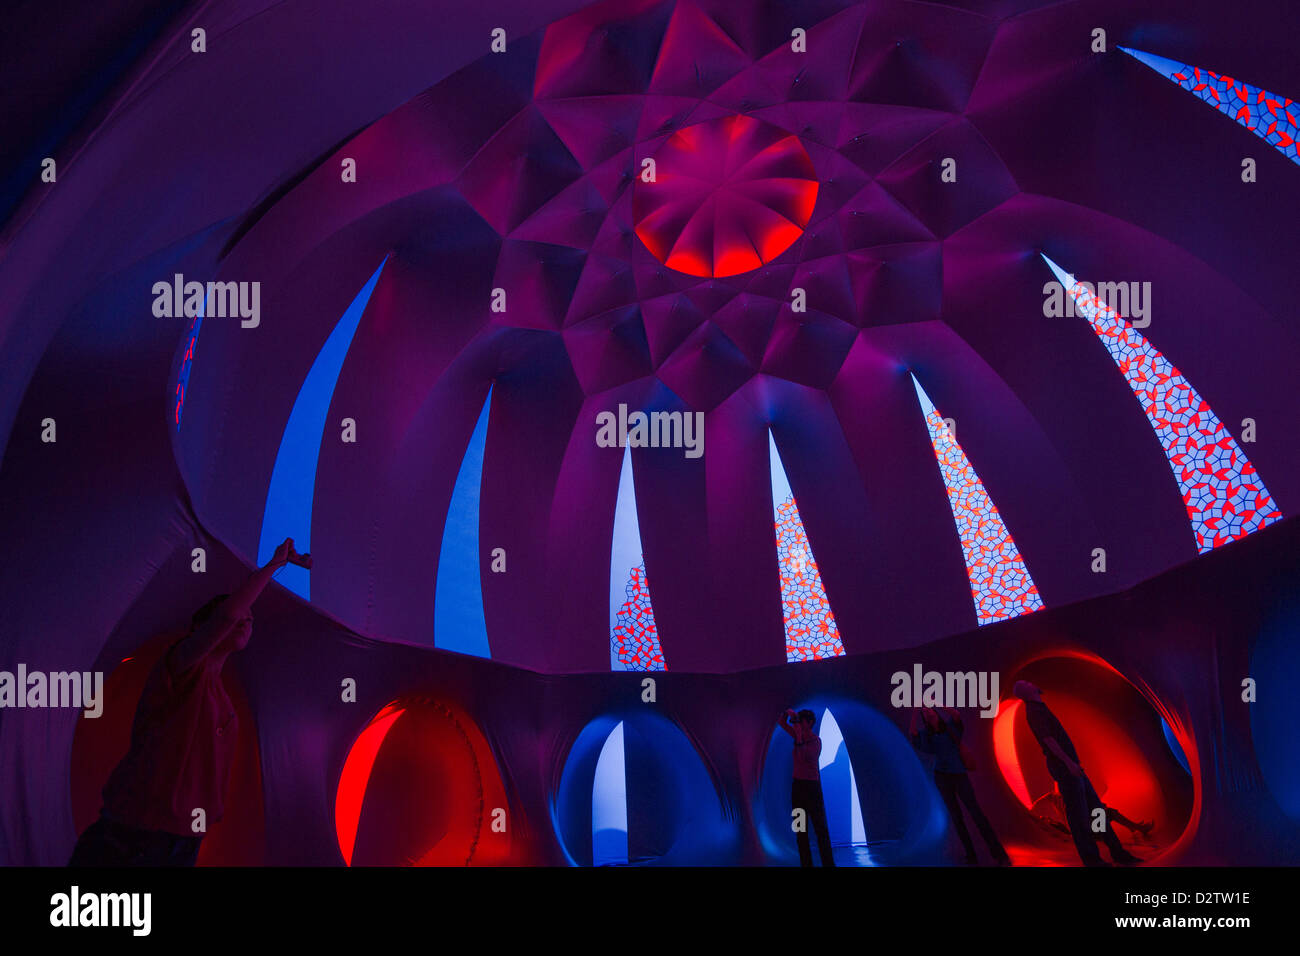 Exxopolis Luminarium - purple dome shaped cathedral inside the inflatable traveling art exhibition by Architects - Stock Image